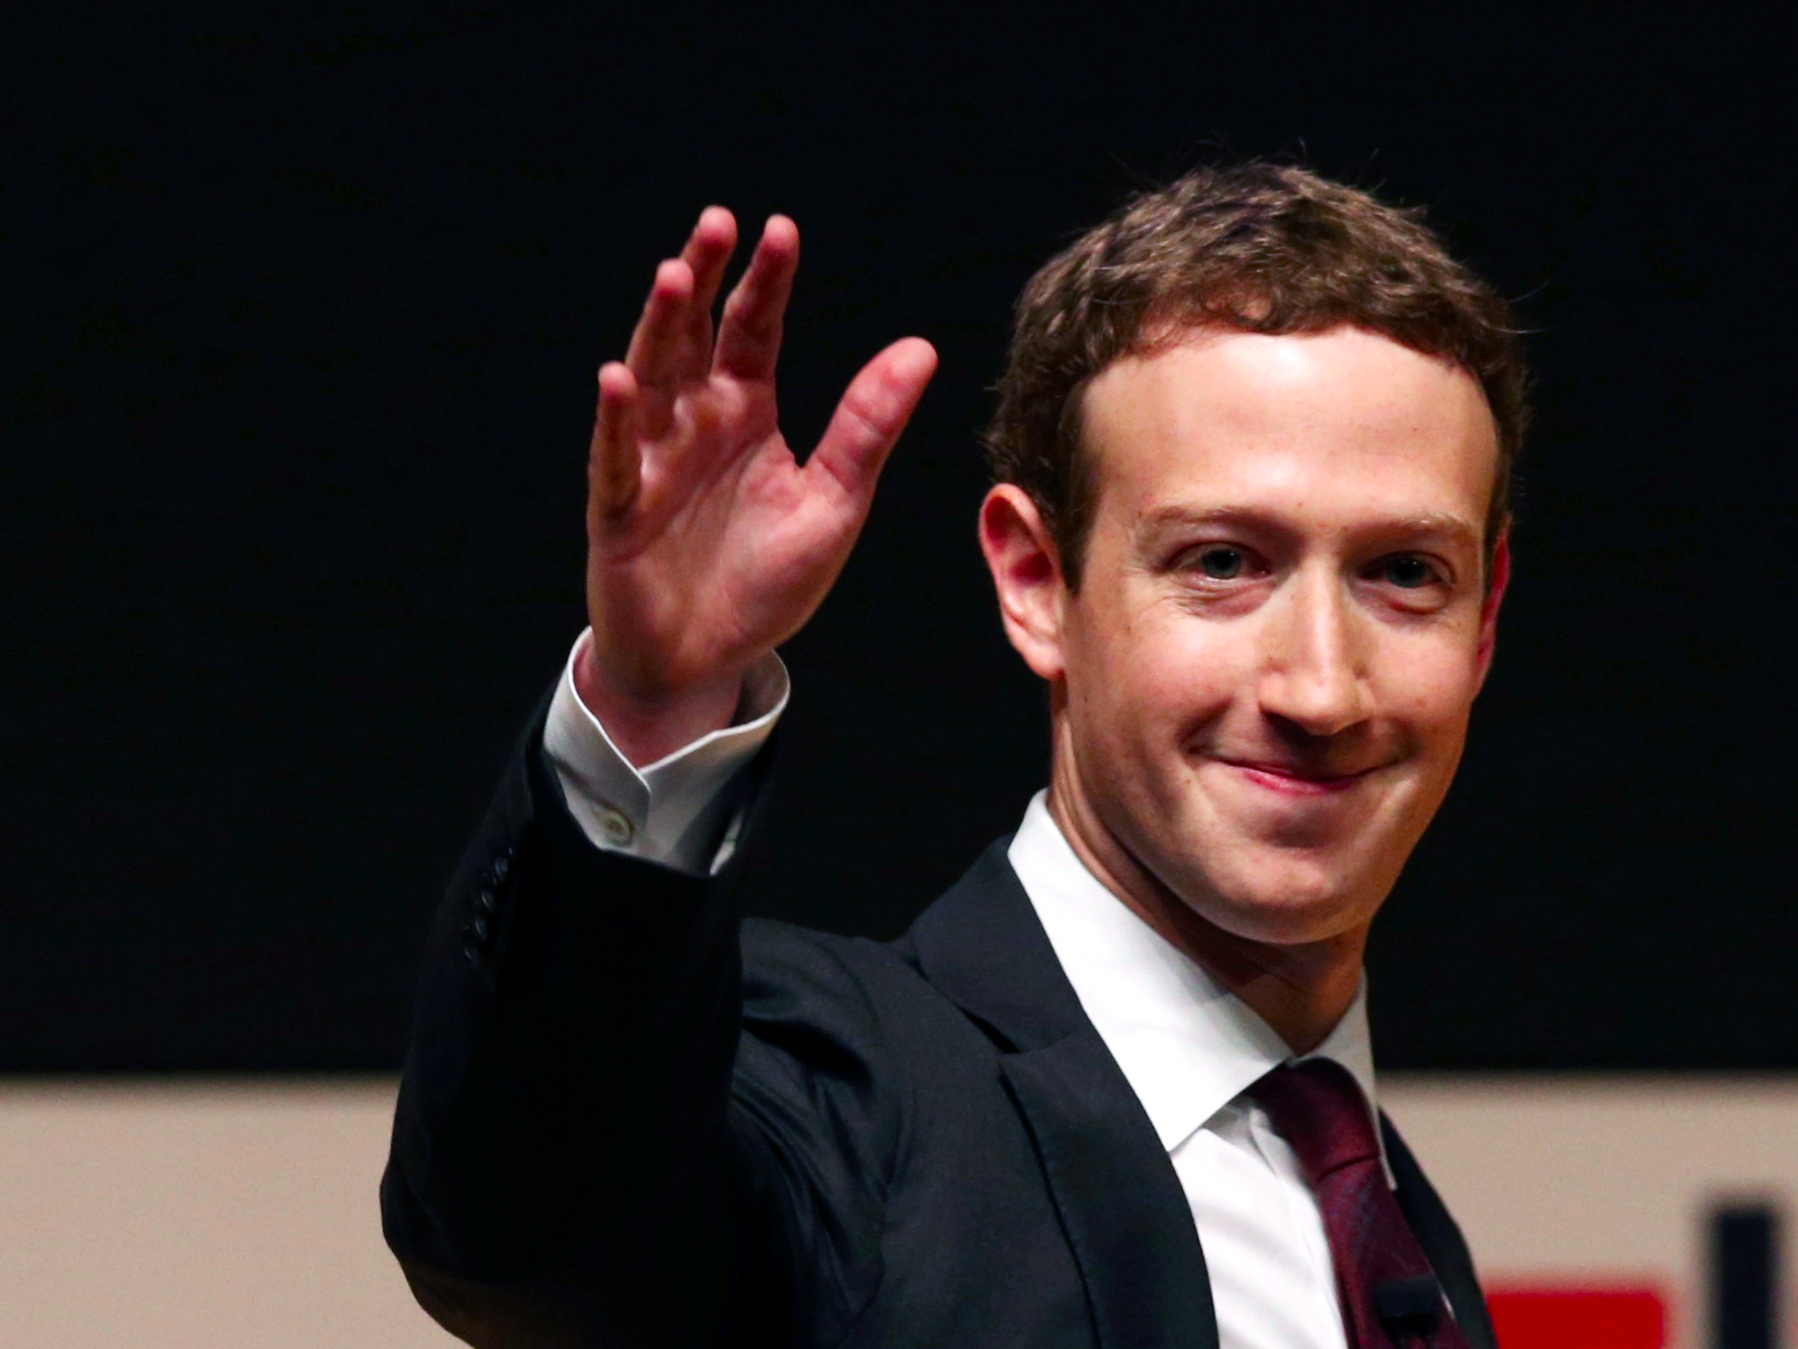 States United Executive World'S Mark Zuckerberg Chief PNG Image